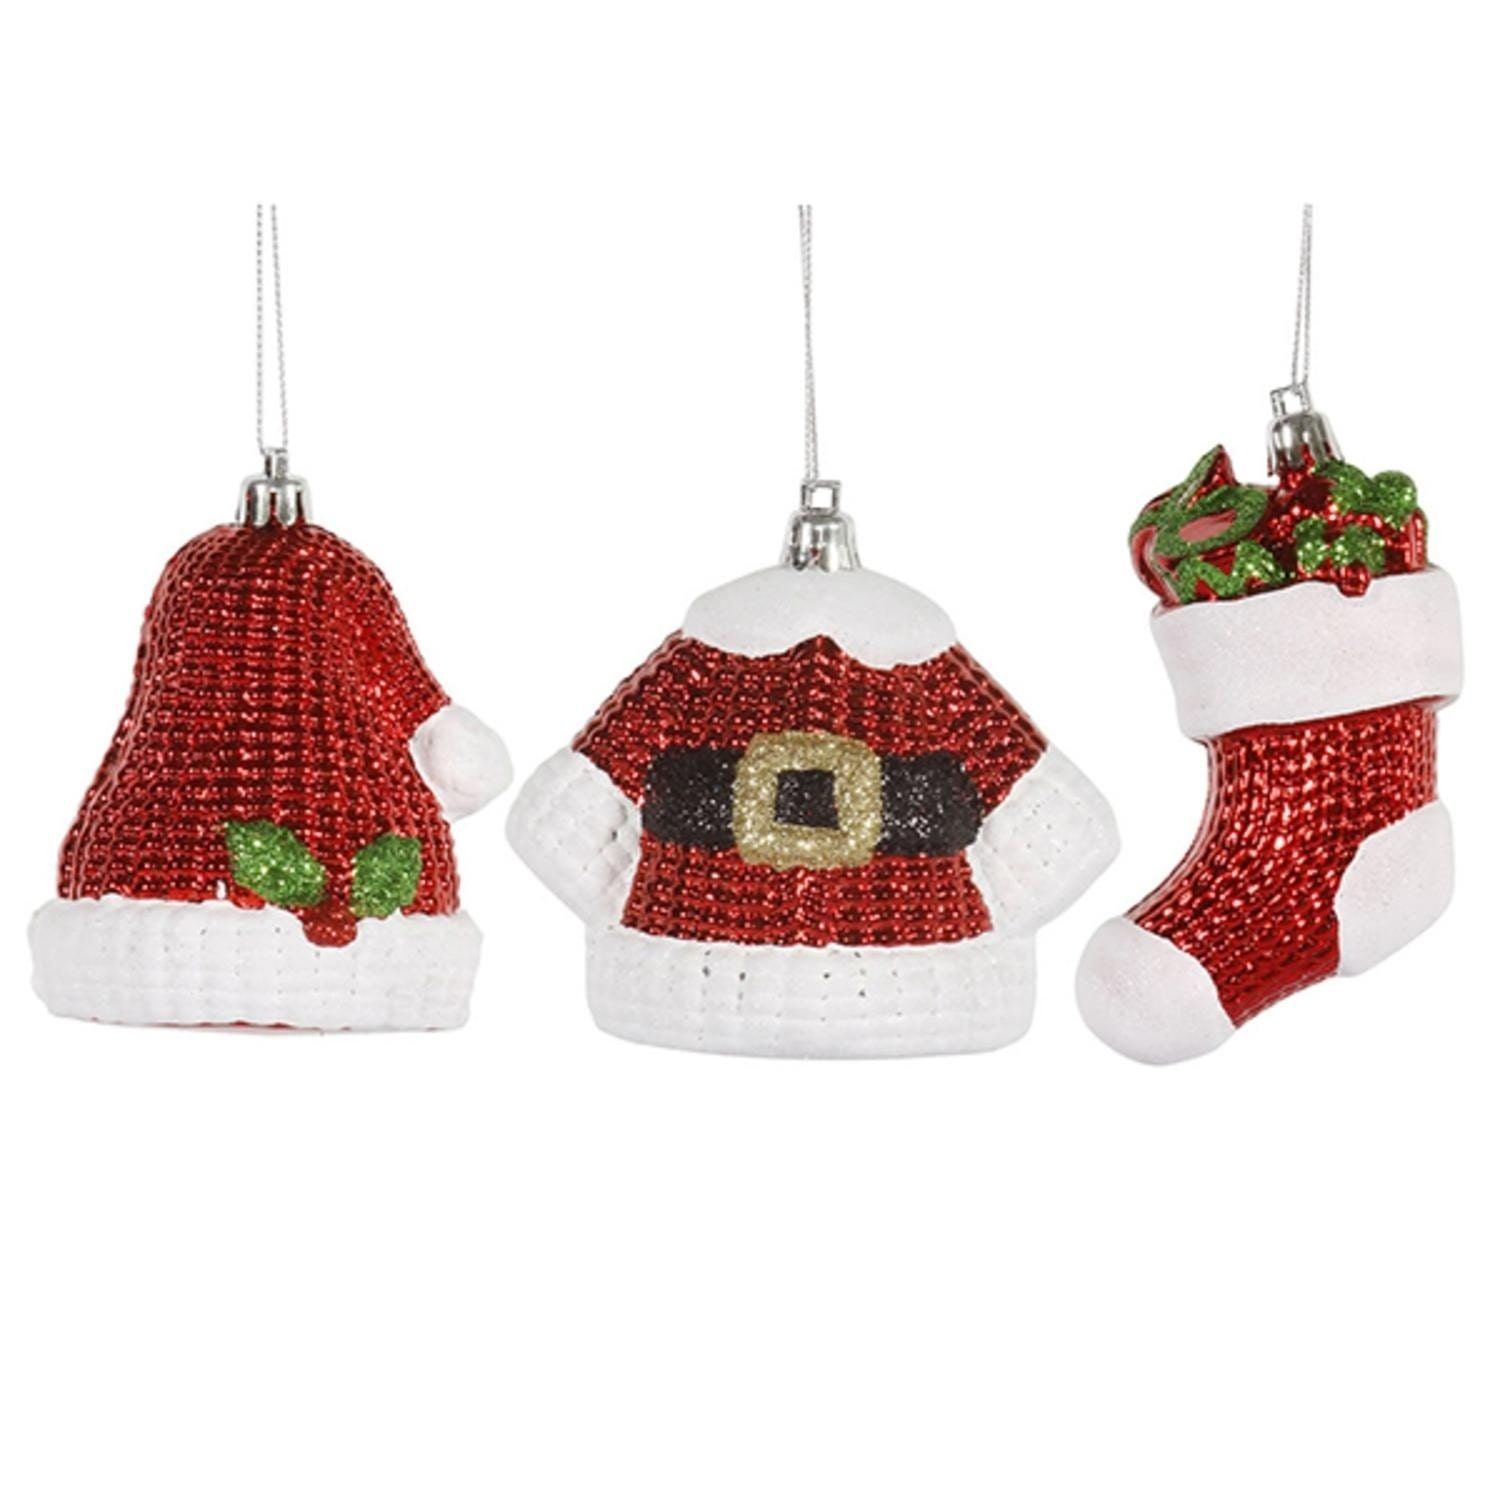 Vickerman 6ct Shiny Shatterproof Santa Claus Hat, Jacket, and Stocking Christmas Ornaments